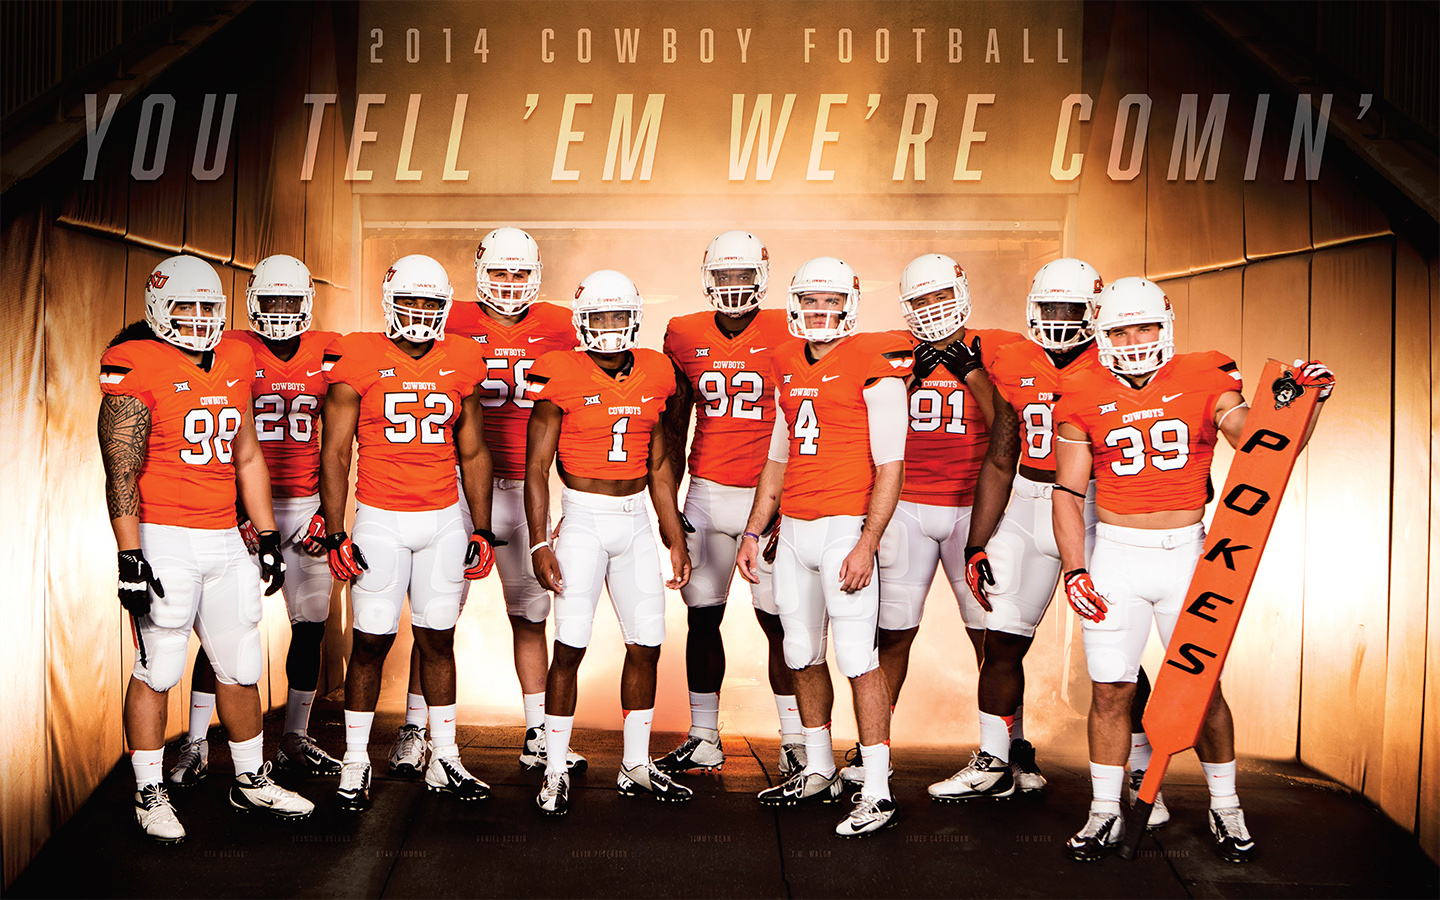 Cowboy Football Wallpaper Oklahoma State University Athletics